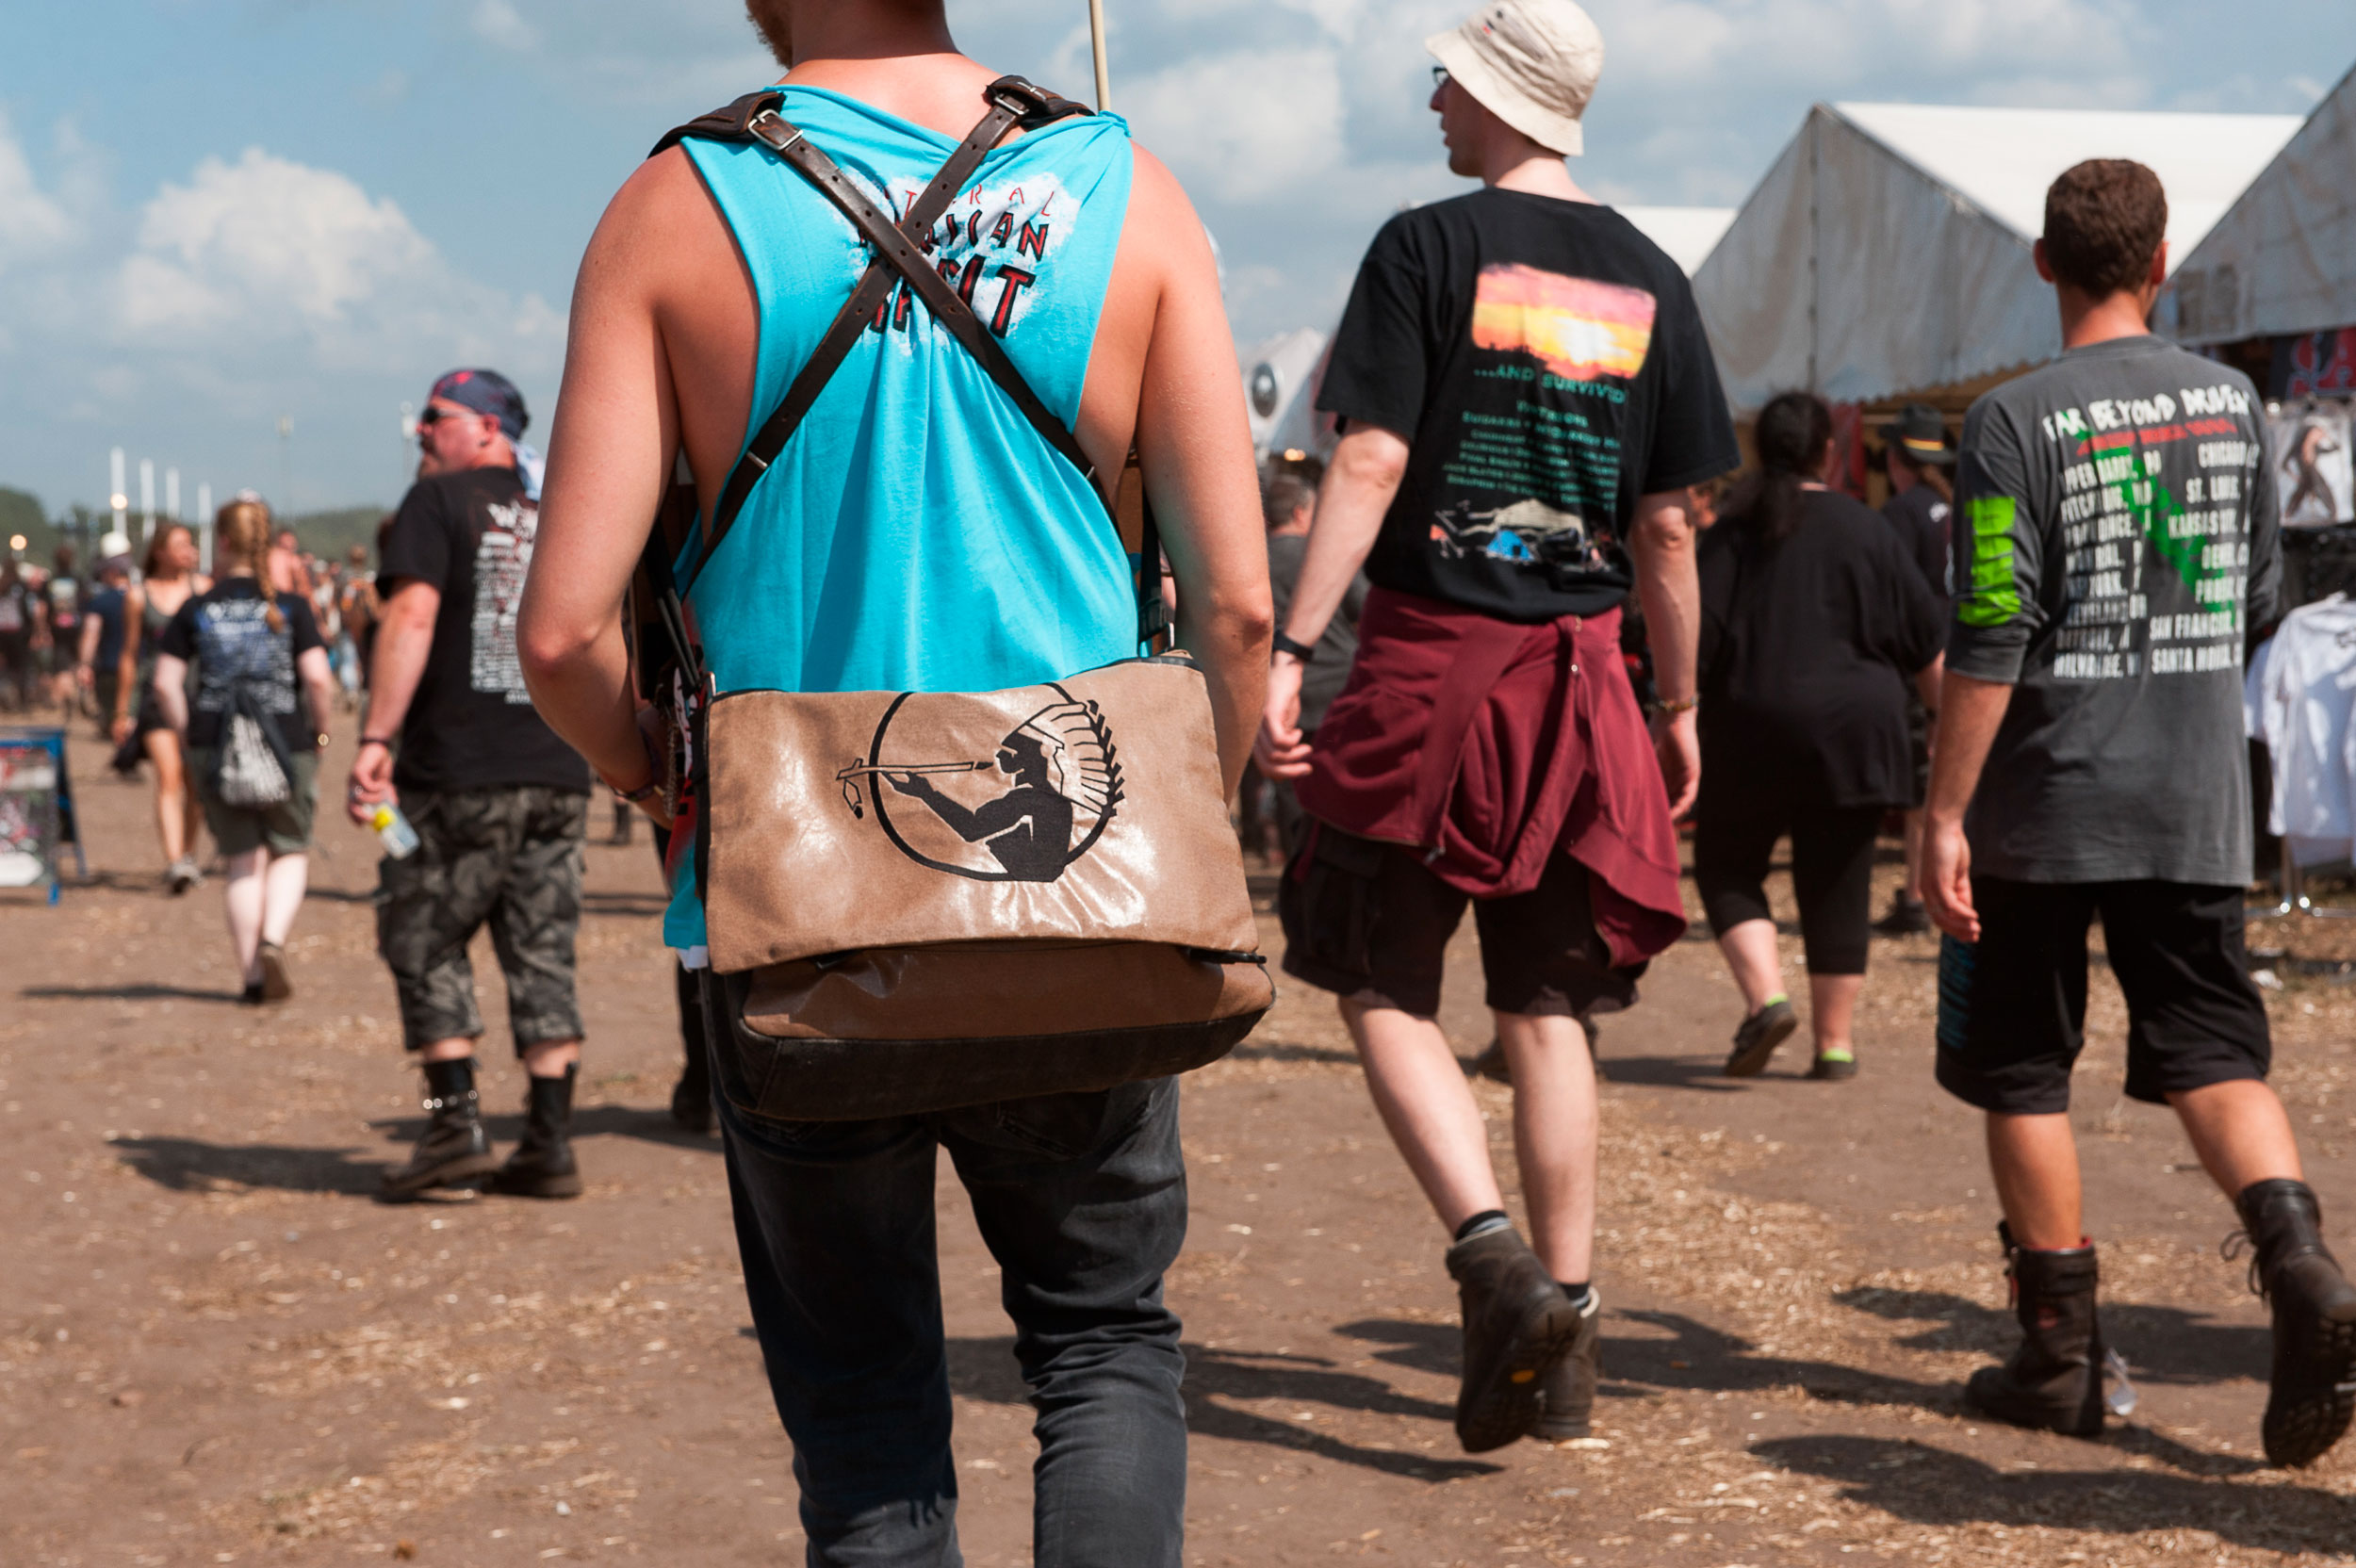 American Spirit, Wacken, Musikfestival, Reportagefoto, The Sponsor People,